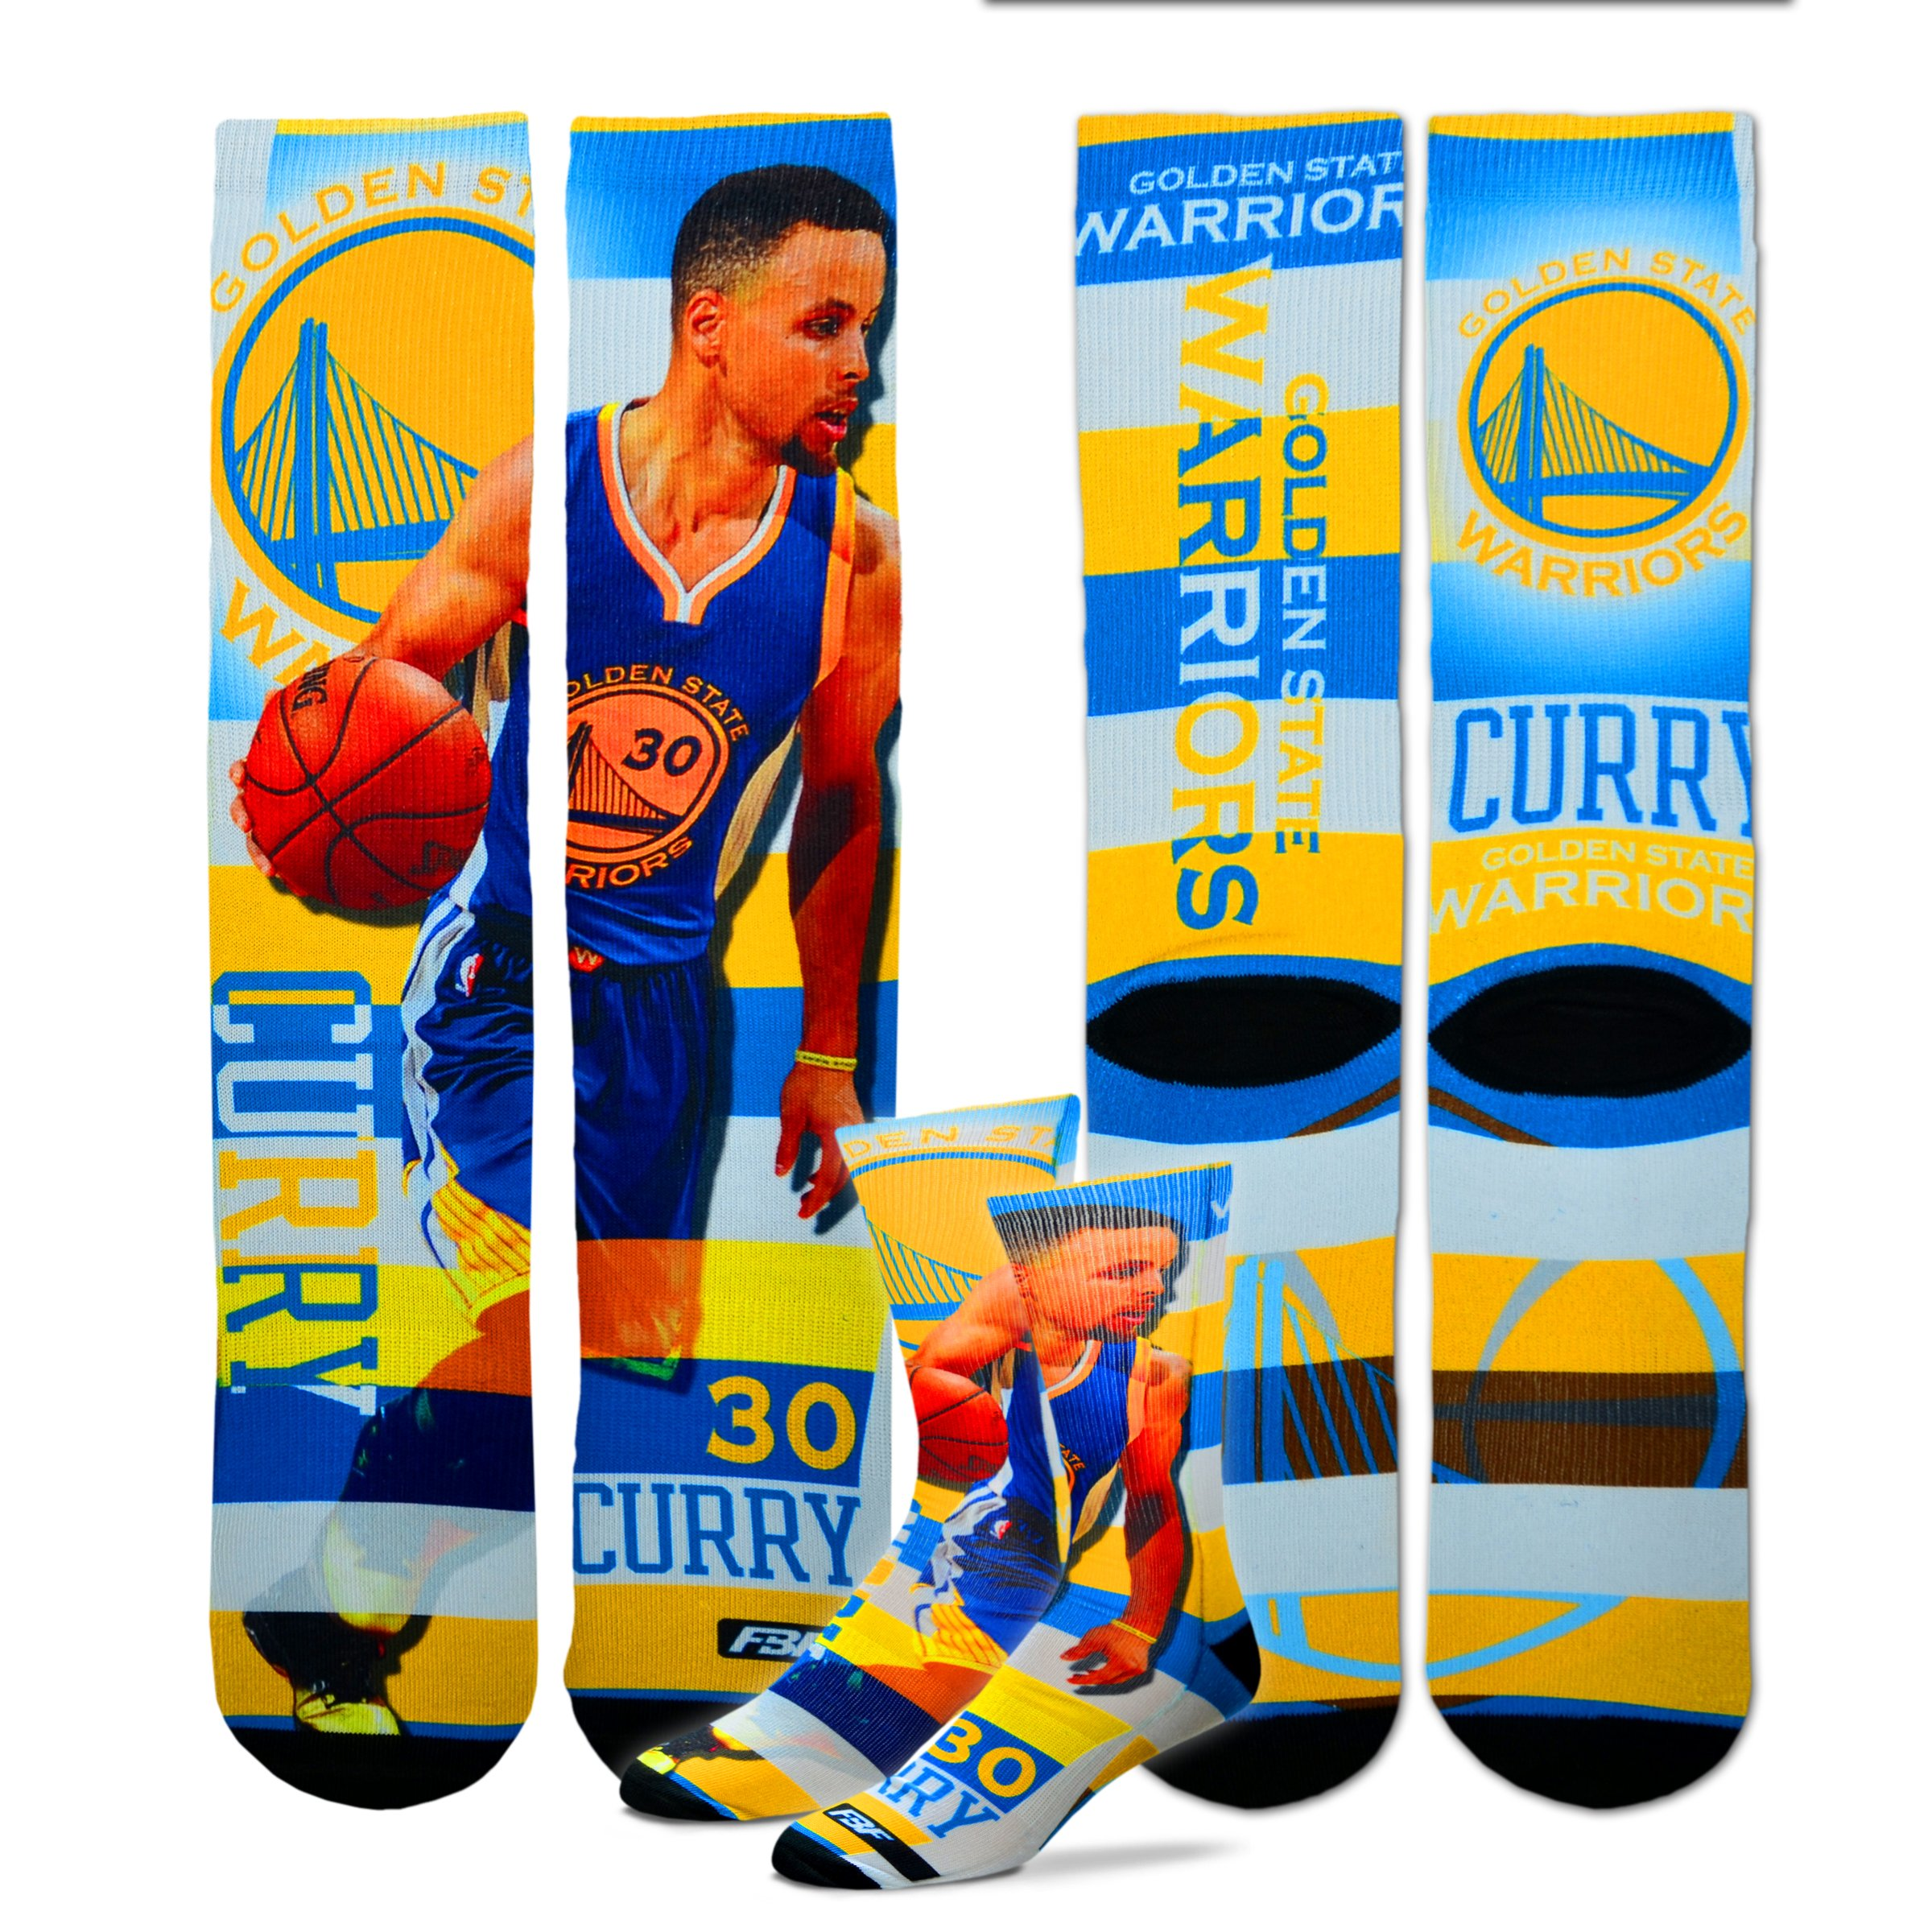 Golden State Warriors Youth Size Pro Stripe NBA Crew Kids Socks (4-8 YRS) 1 Pair - Stephen Curry #30 by For Bare Feet